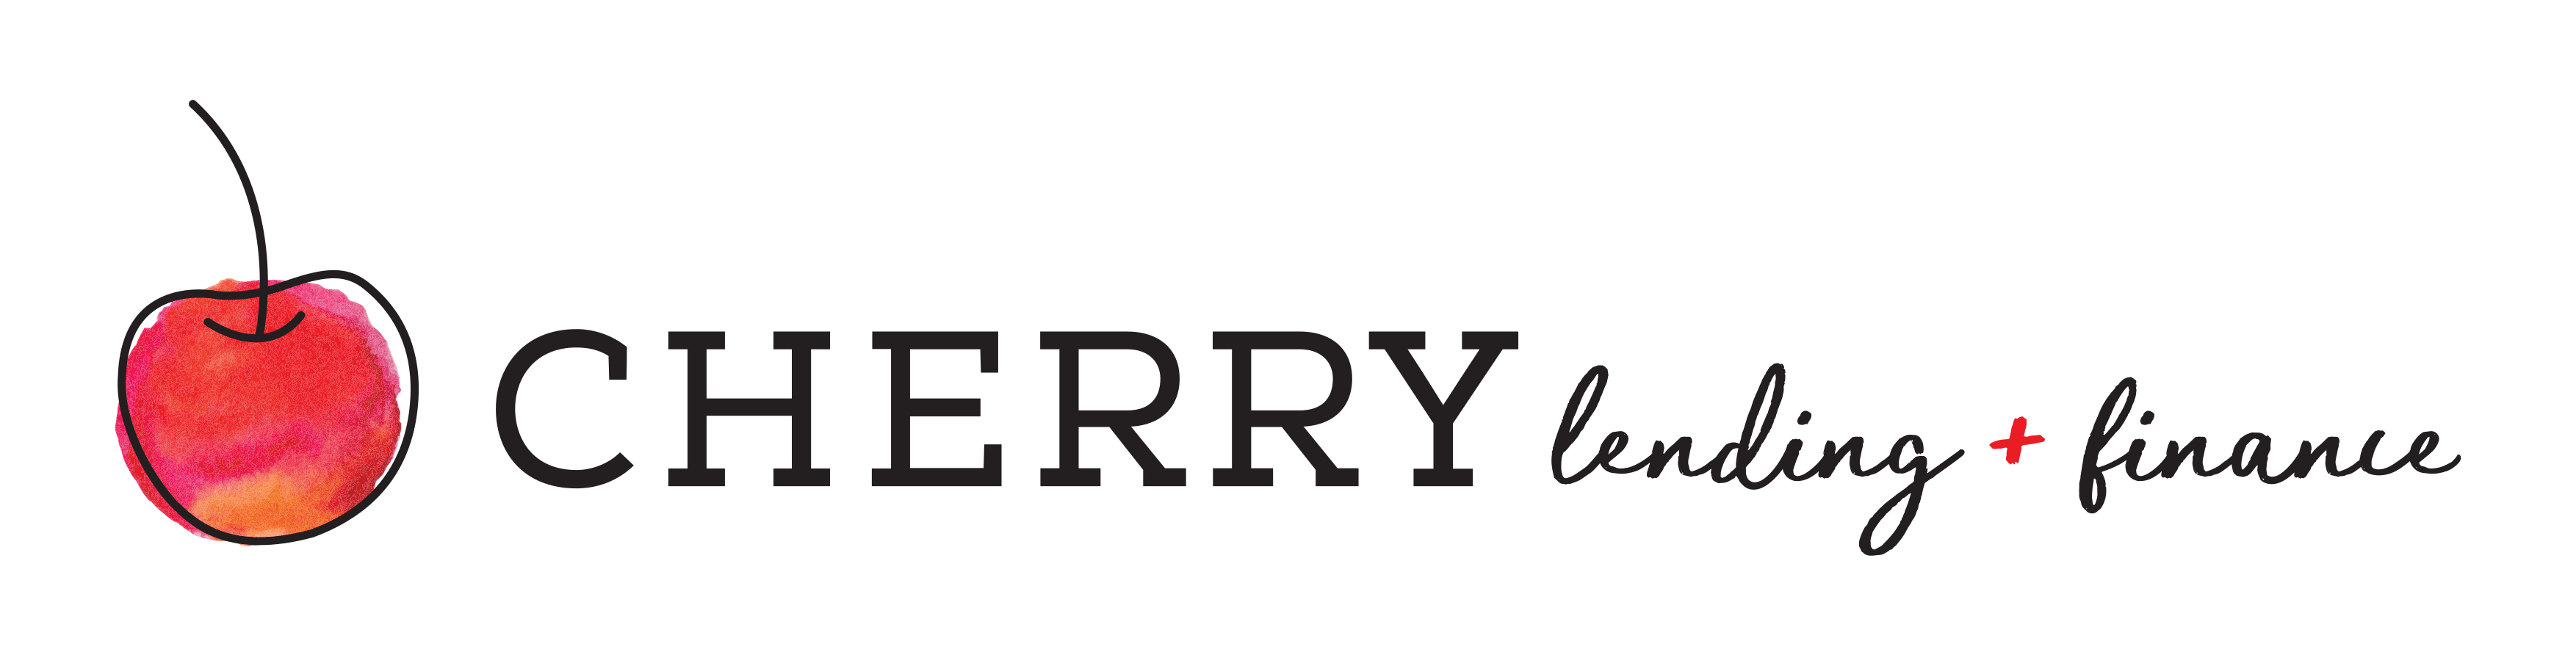 Cherry Lending and Finance | Mortgage & Finance Broker & Advisor